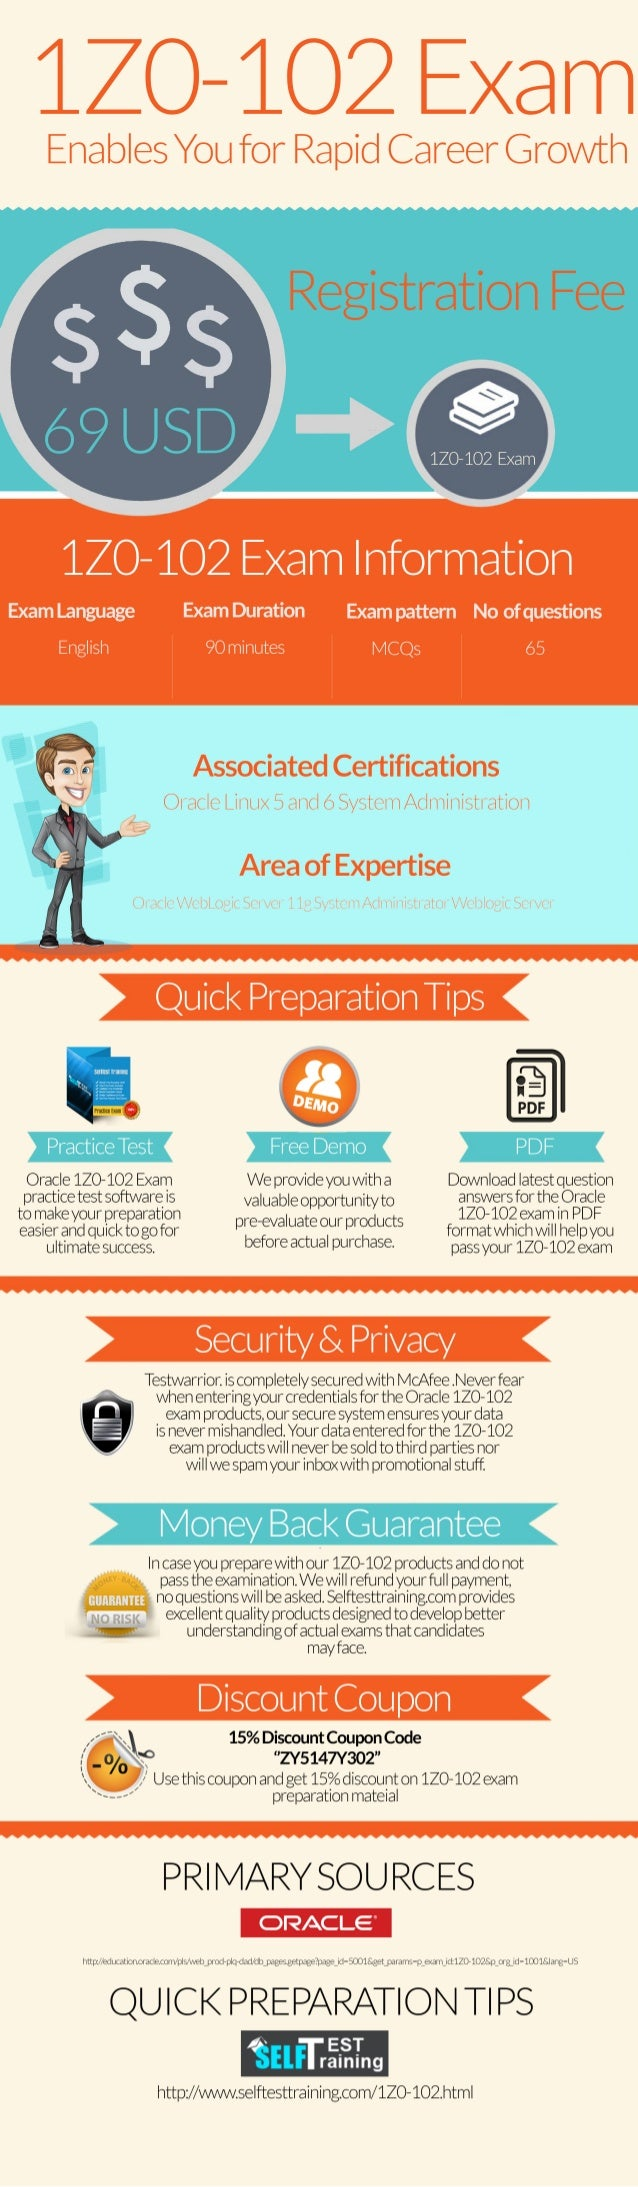 Get 1z0-102 exam practice tests for quick preparation [infographic]